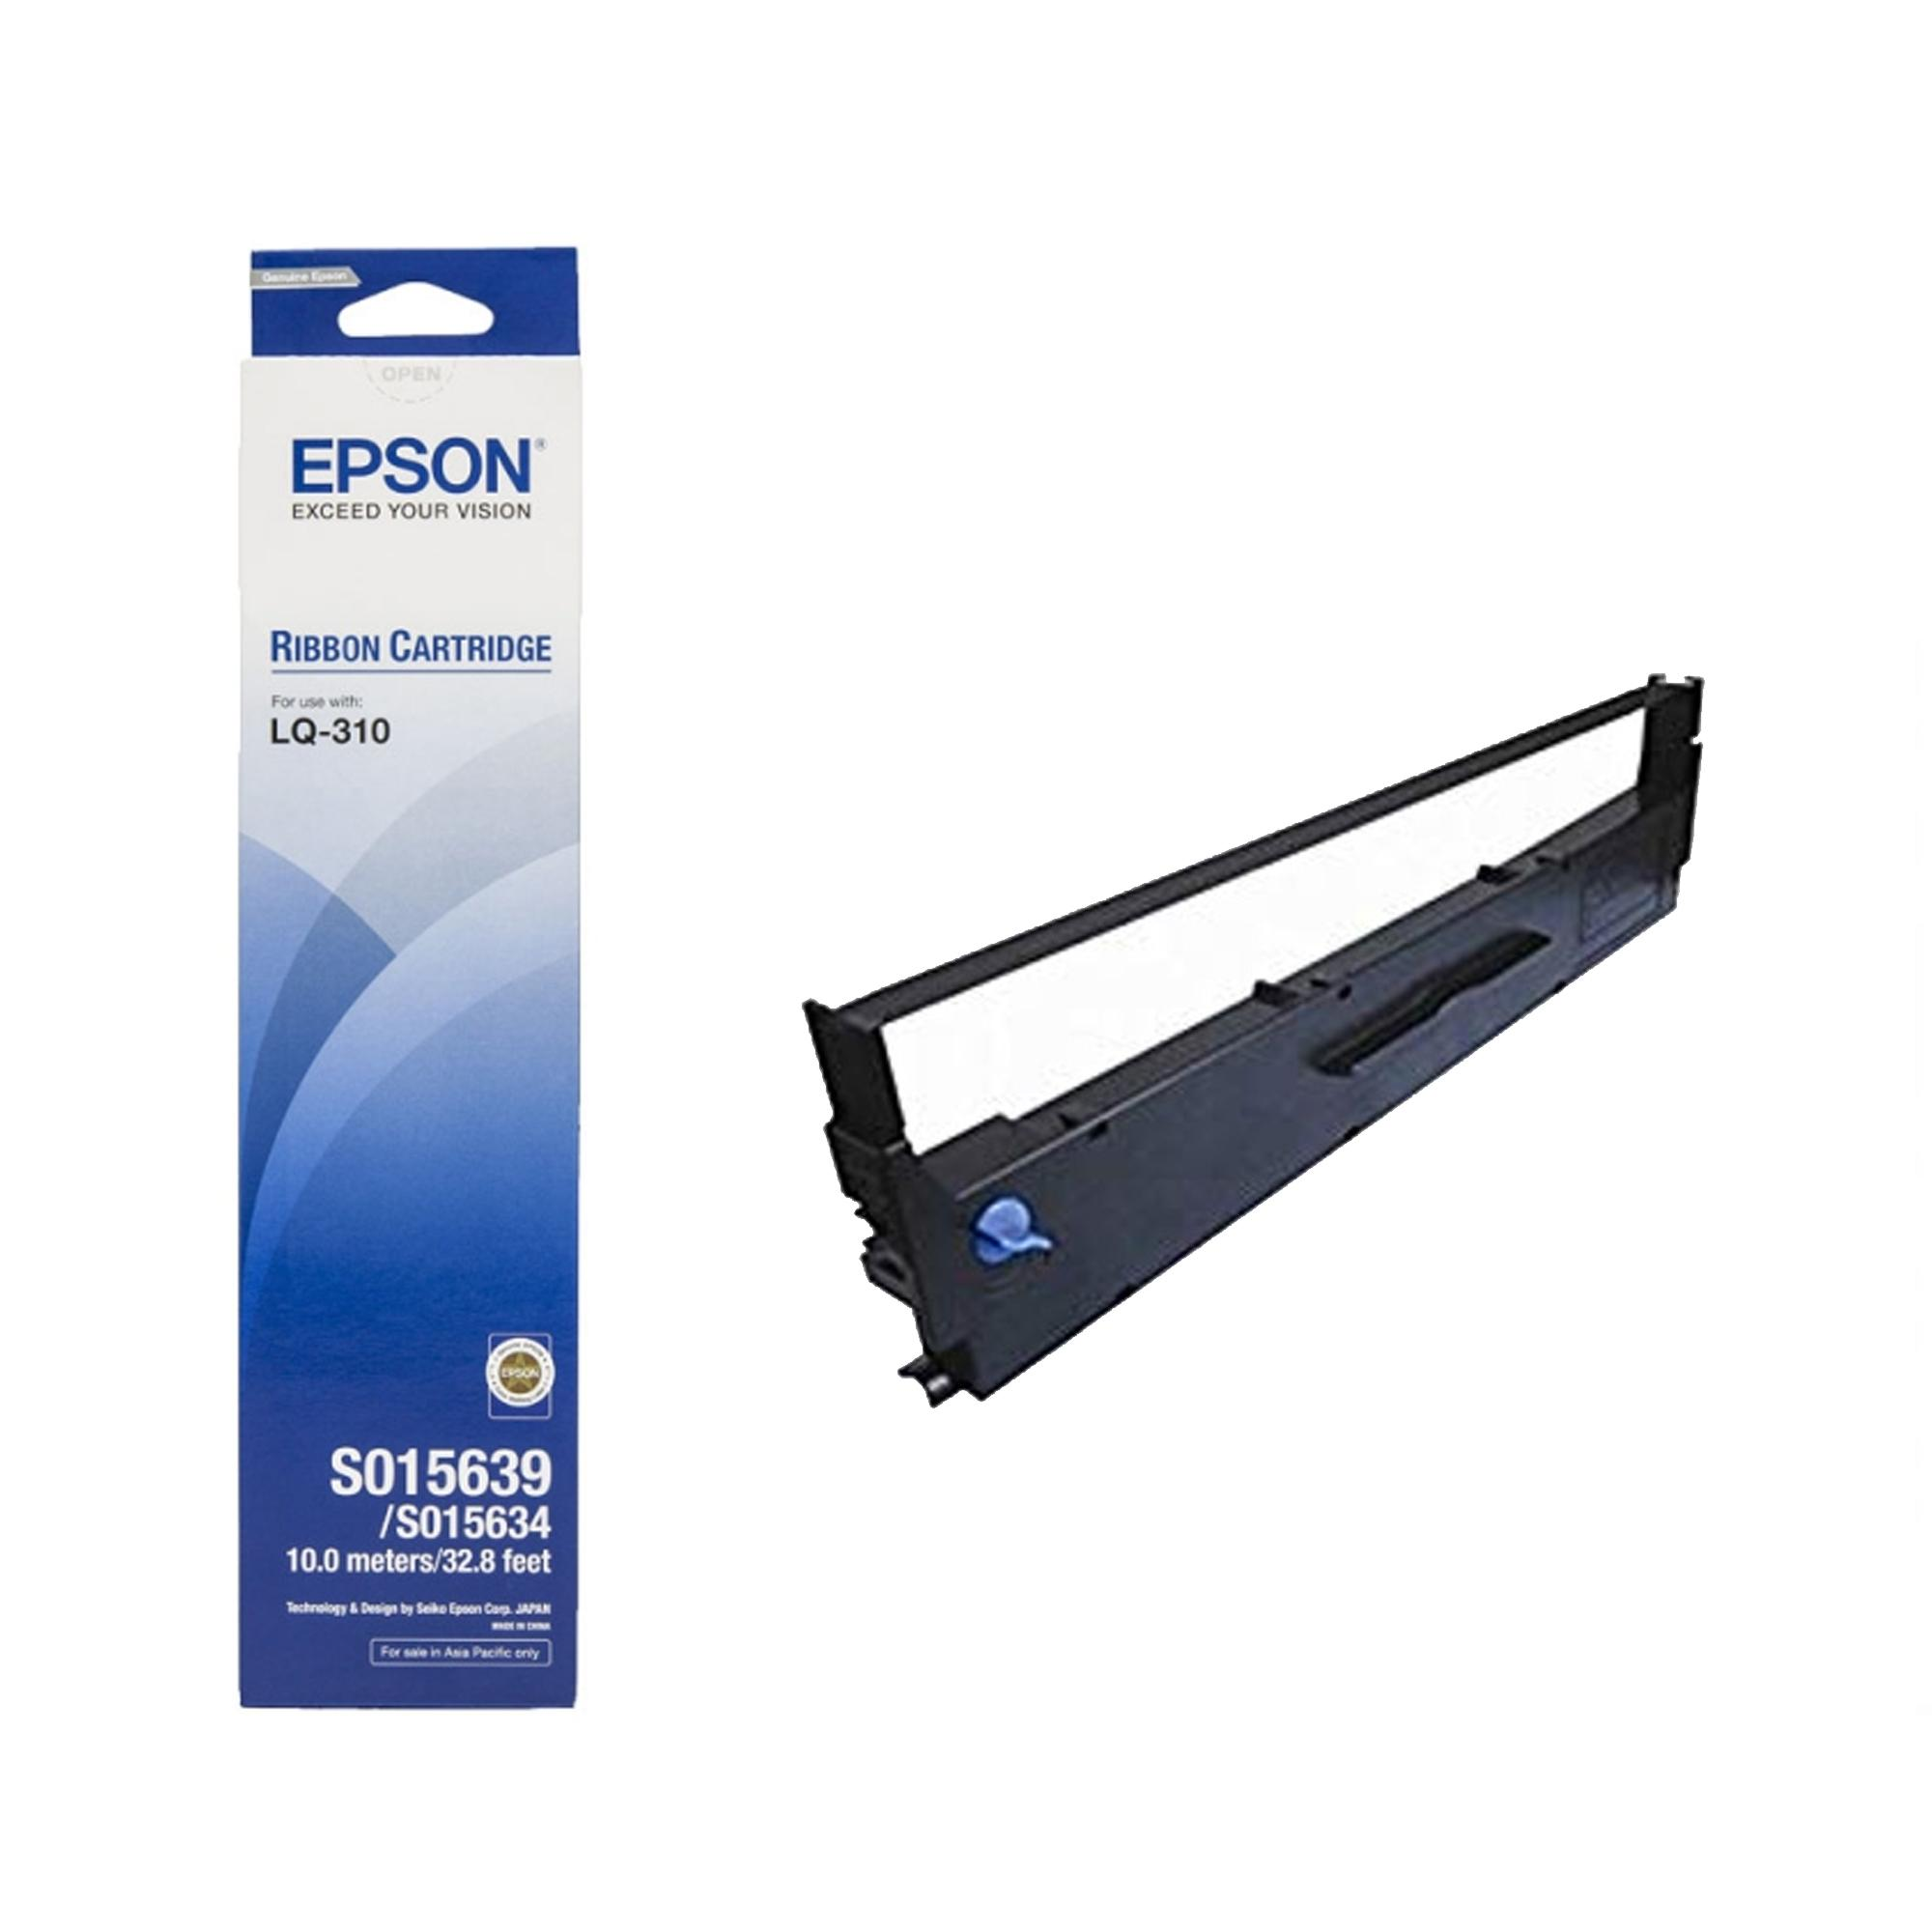 Epson Philippines - Epson Dot Matrix Printer for sale - prices